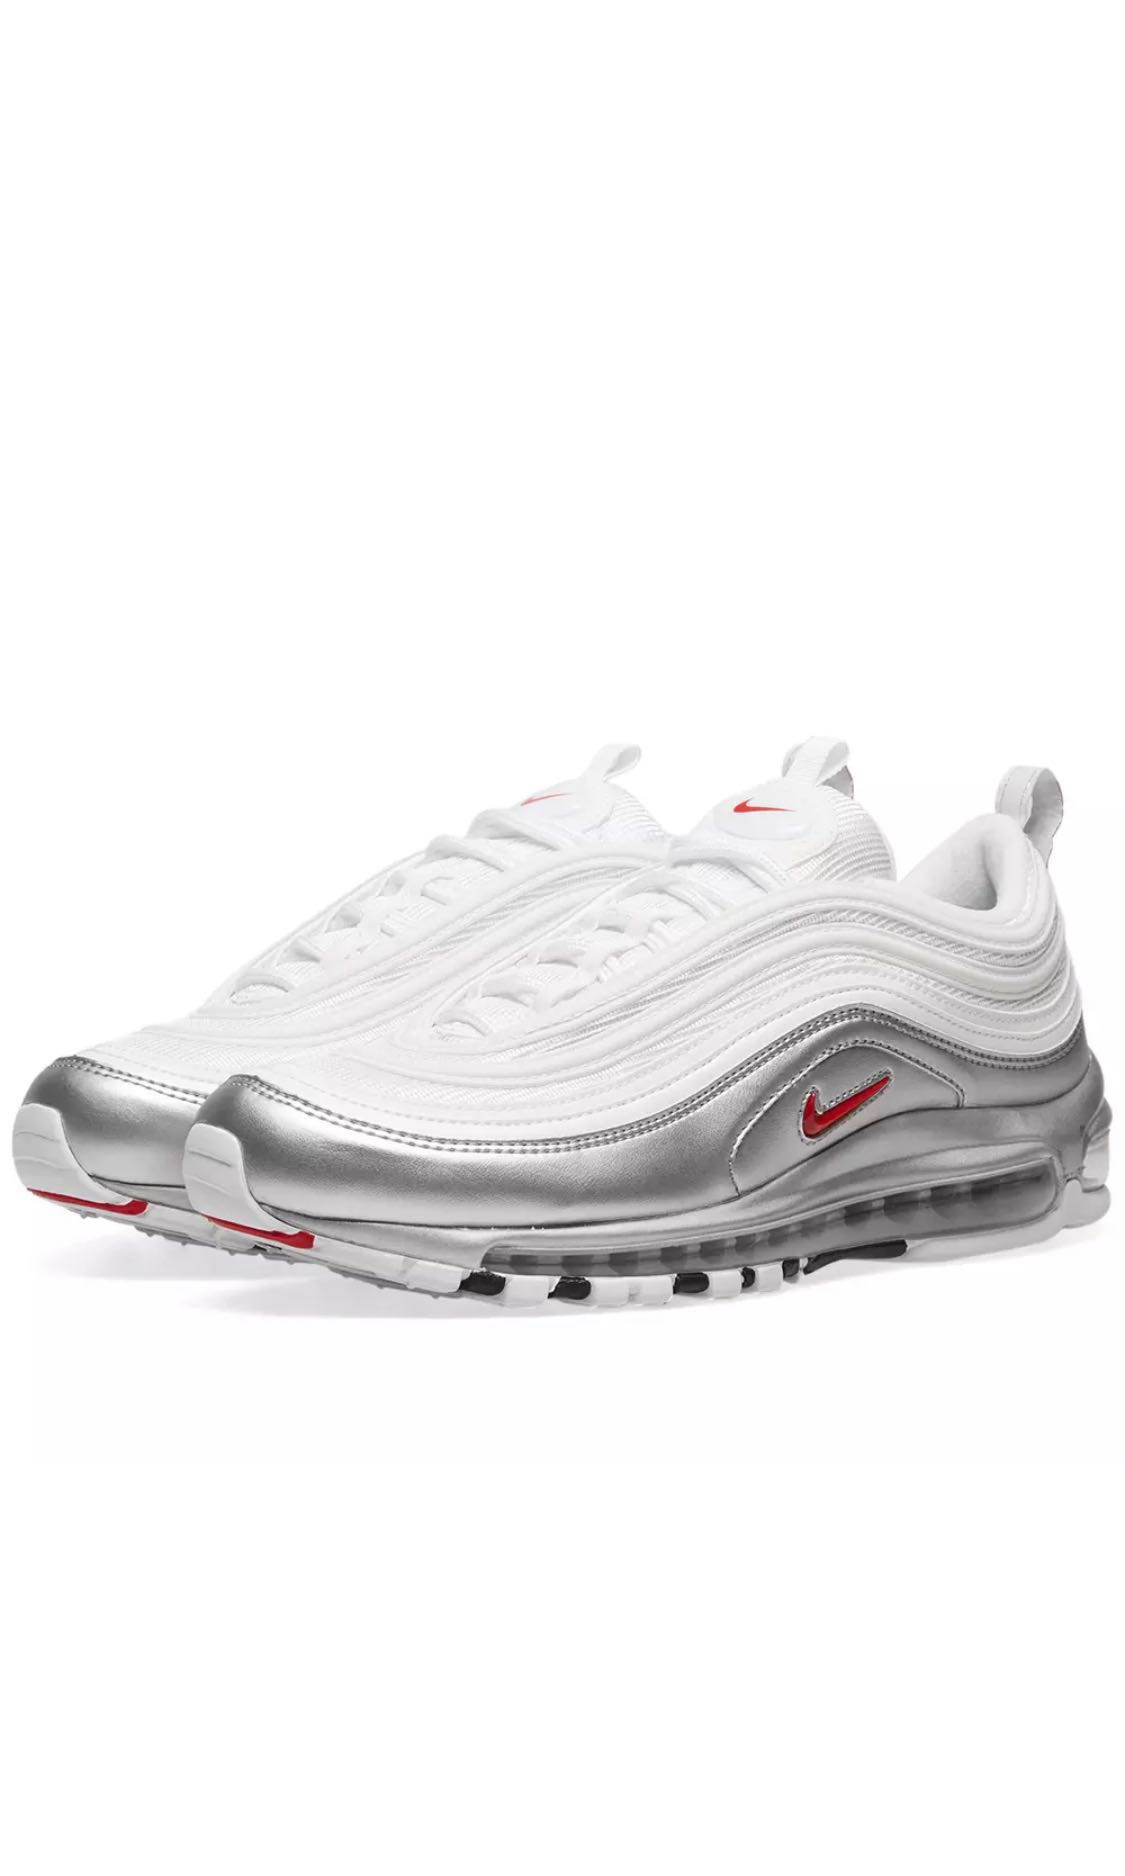 71e83c1ee3 Nike Air Max 97 QS (WHITE/VARSITY RED/SILVER), Men's Fashion ...